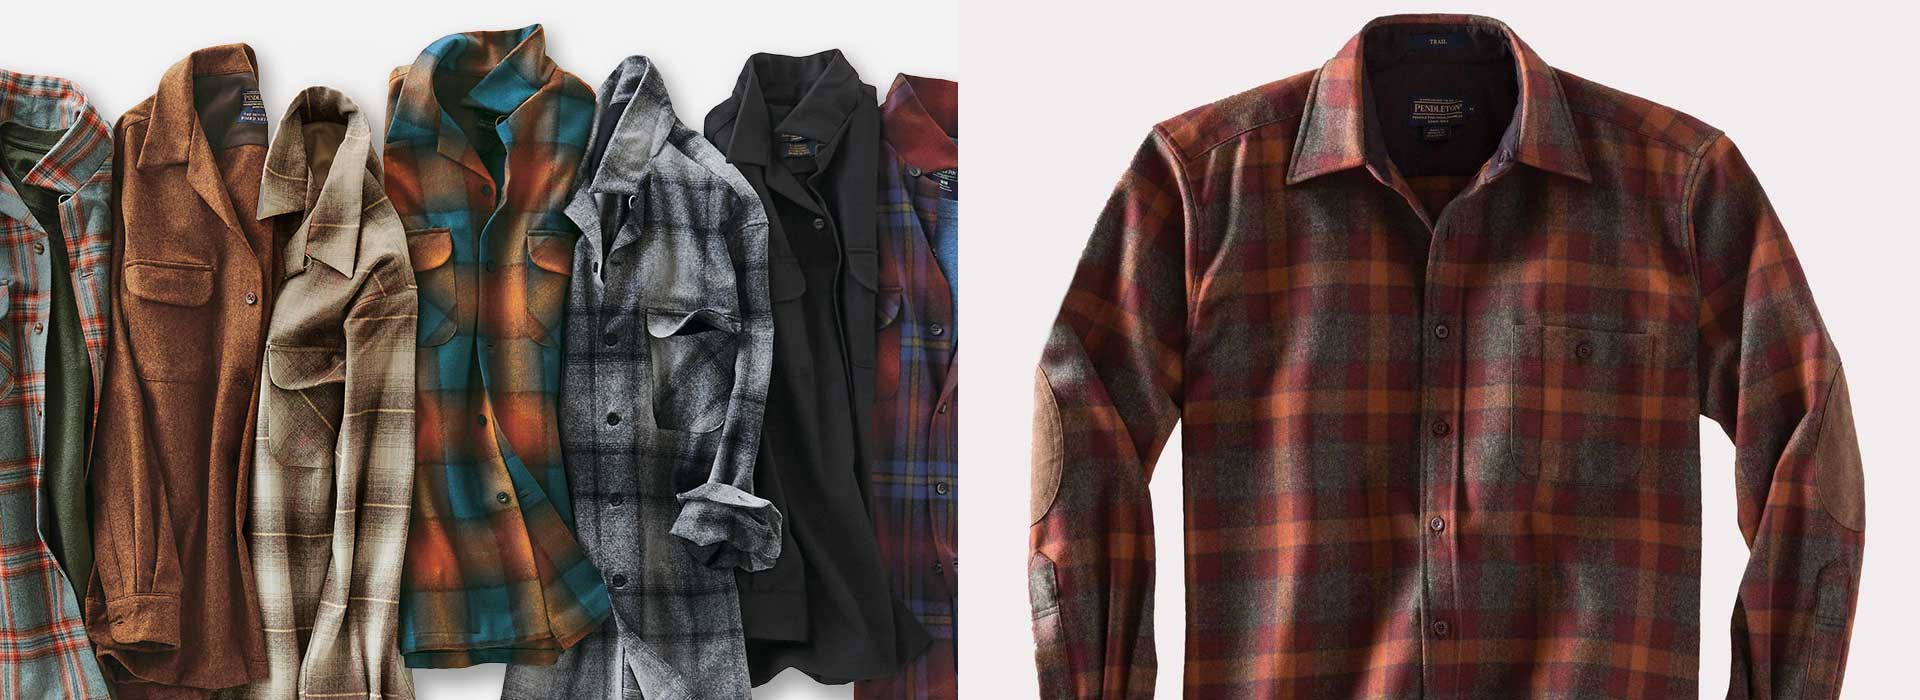 Up to 50% off Pendleton shirts